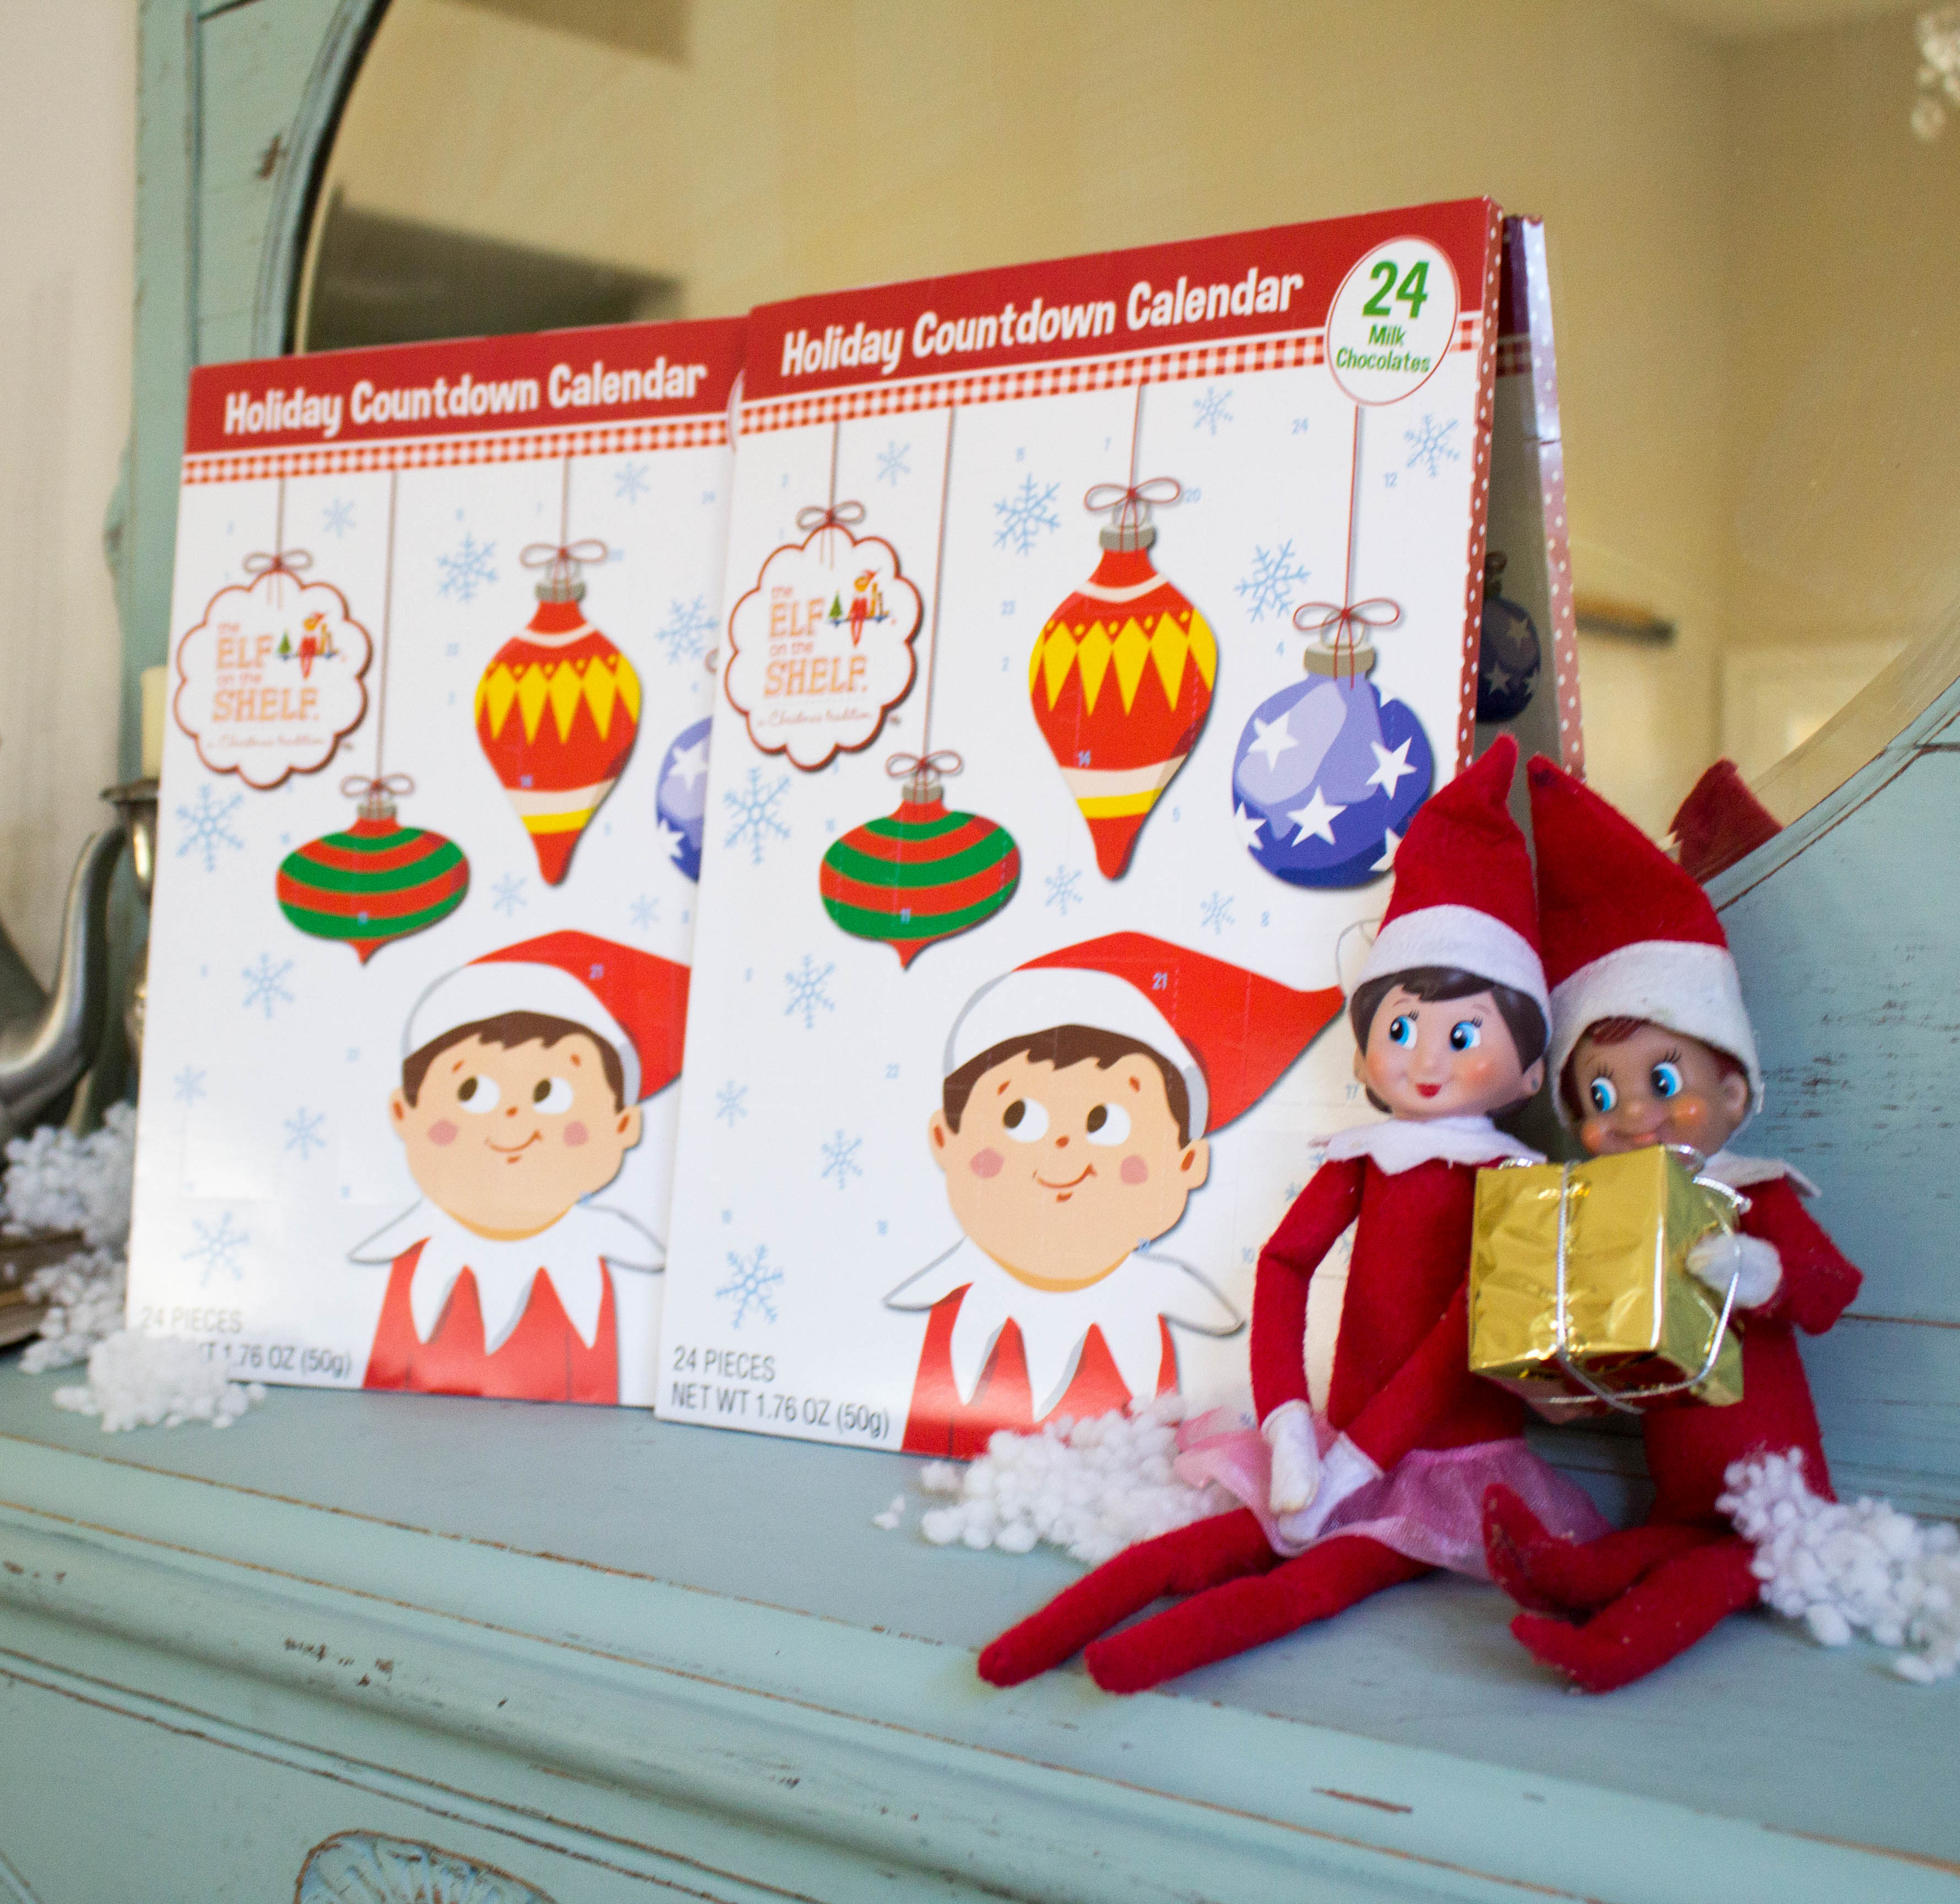 elf-on-the-shelf-ideas-and-elf-on-shelf-products-scenes-christmas-traditions